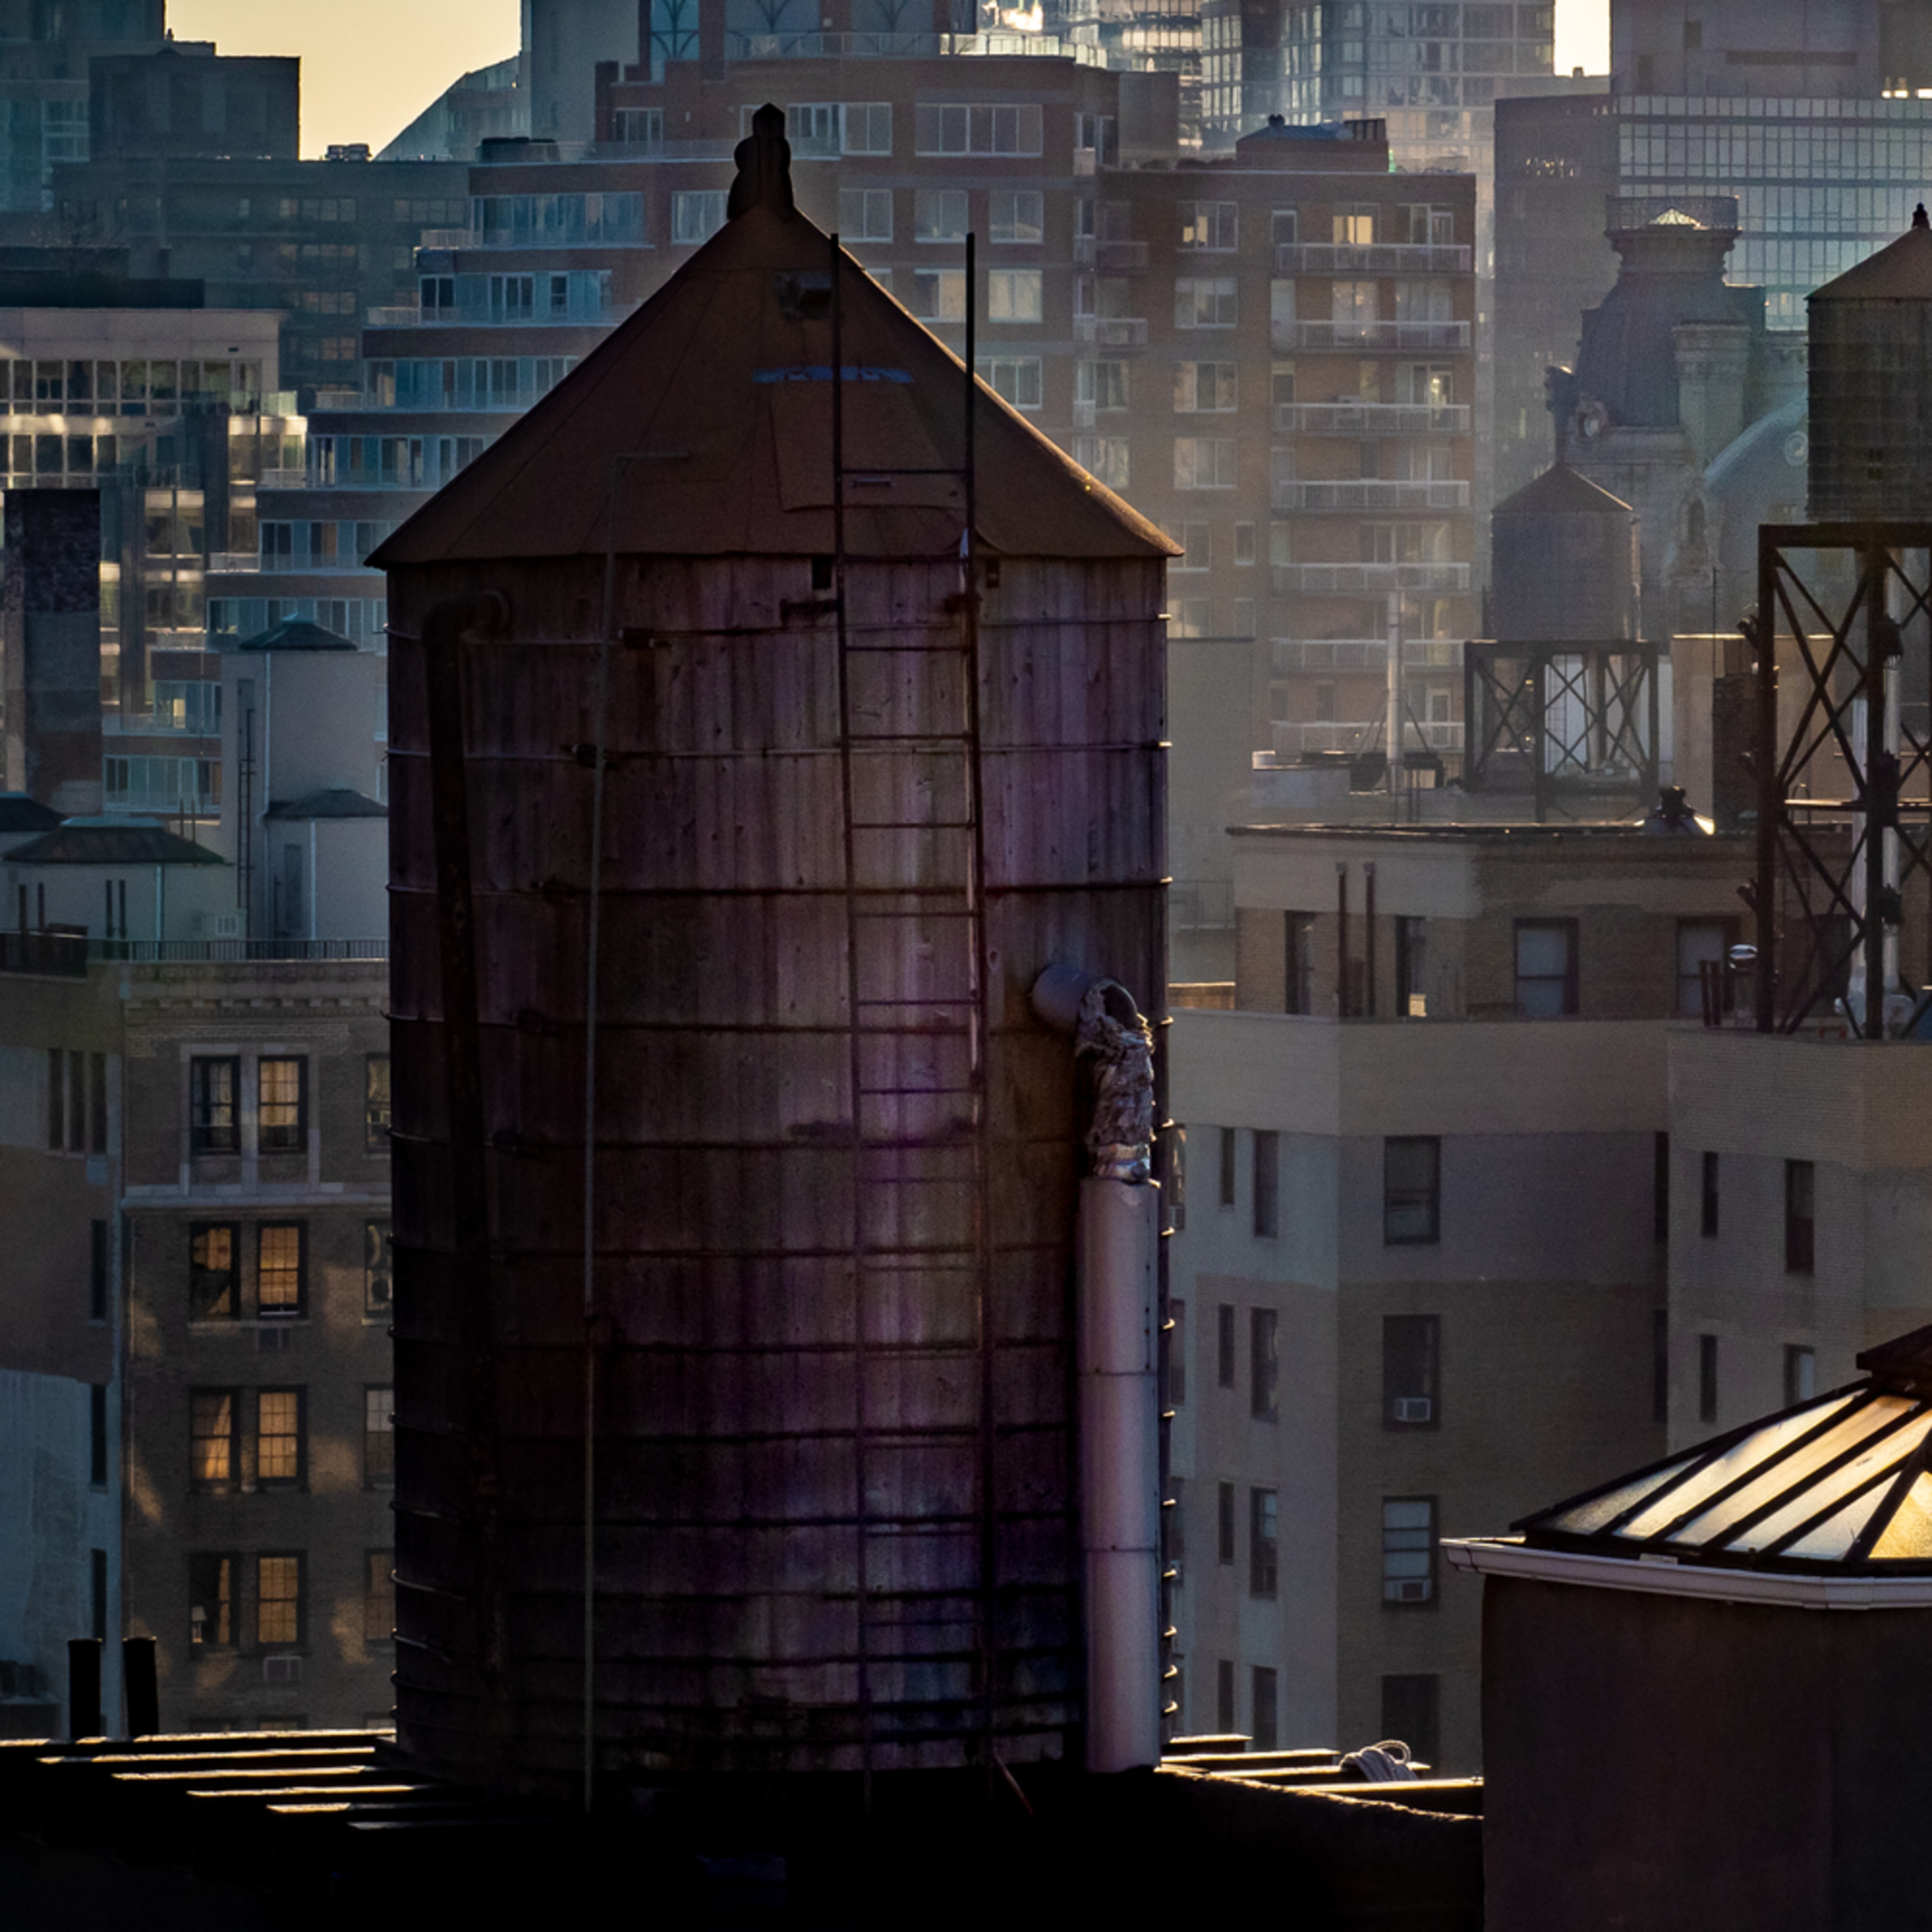 A very dark water tower at sunset nyc 2 19 5 sxsjnp